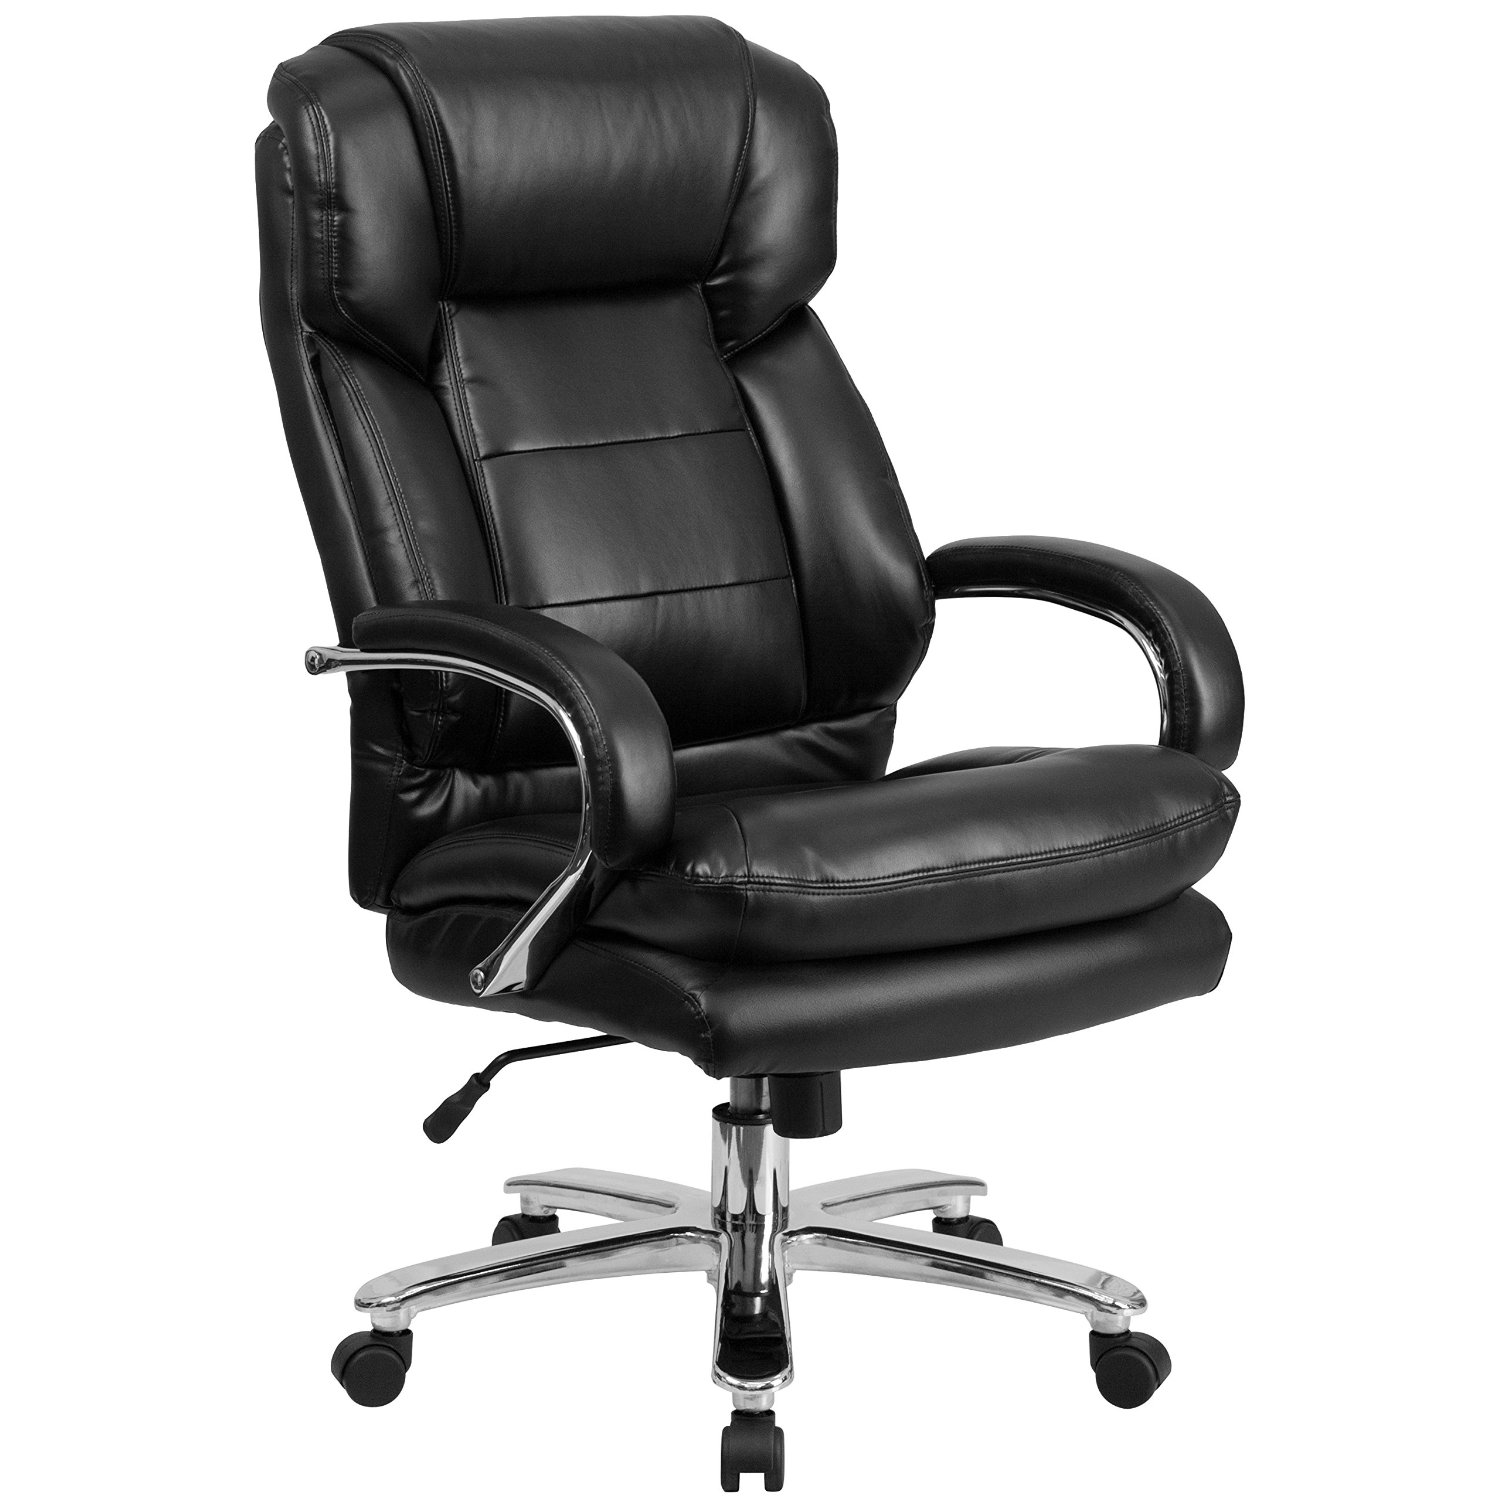 office chair supports 300 lbs executive desk 10 big and tall chairs for extra large comfort